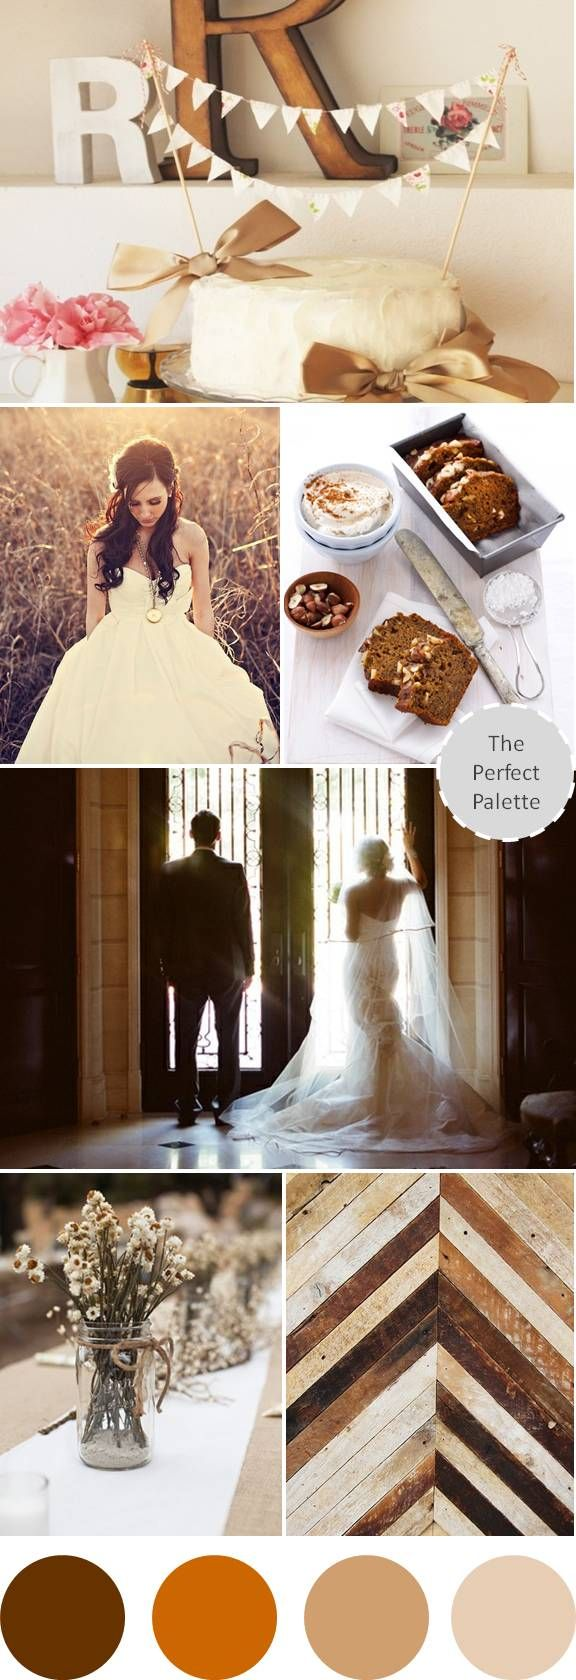 {Wedding Colors}: Shades of Brown